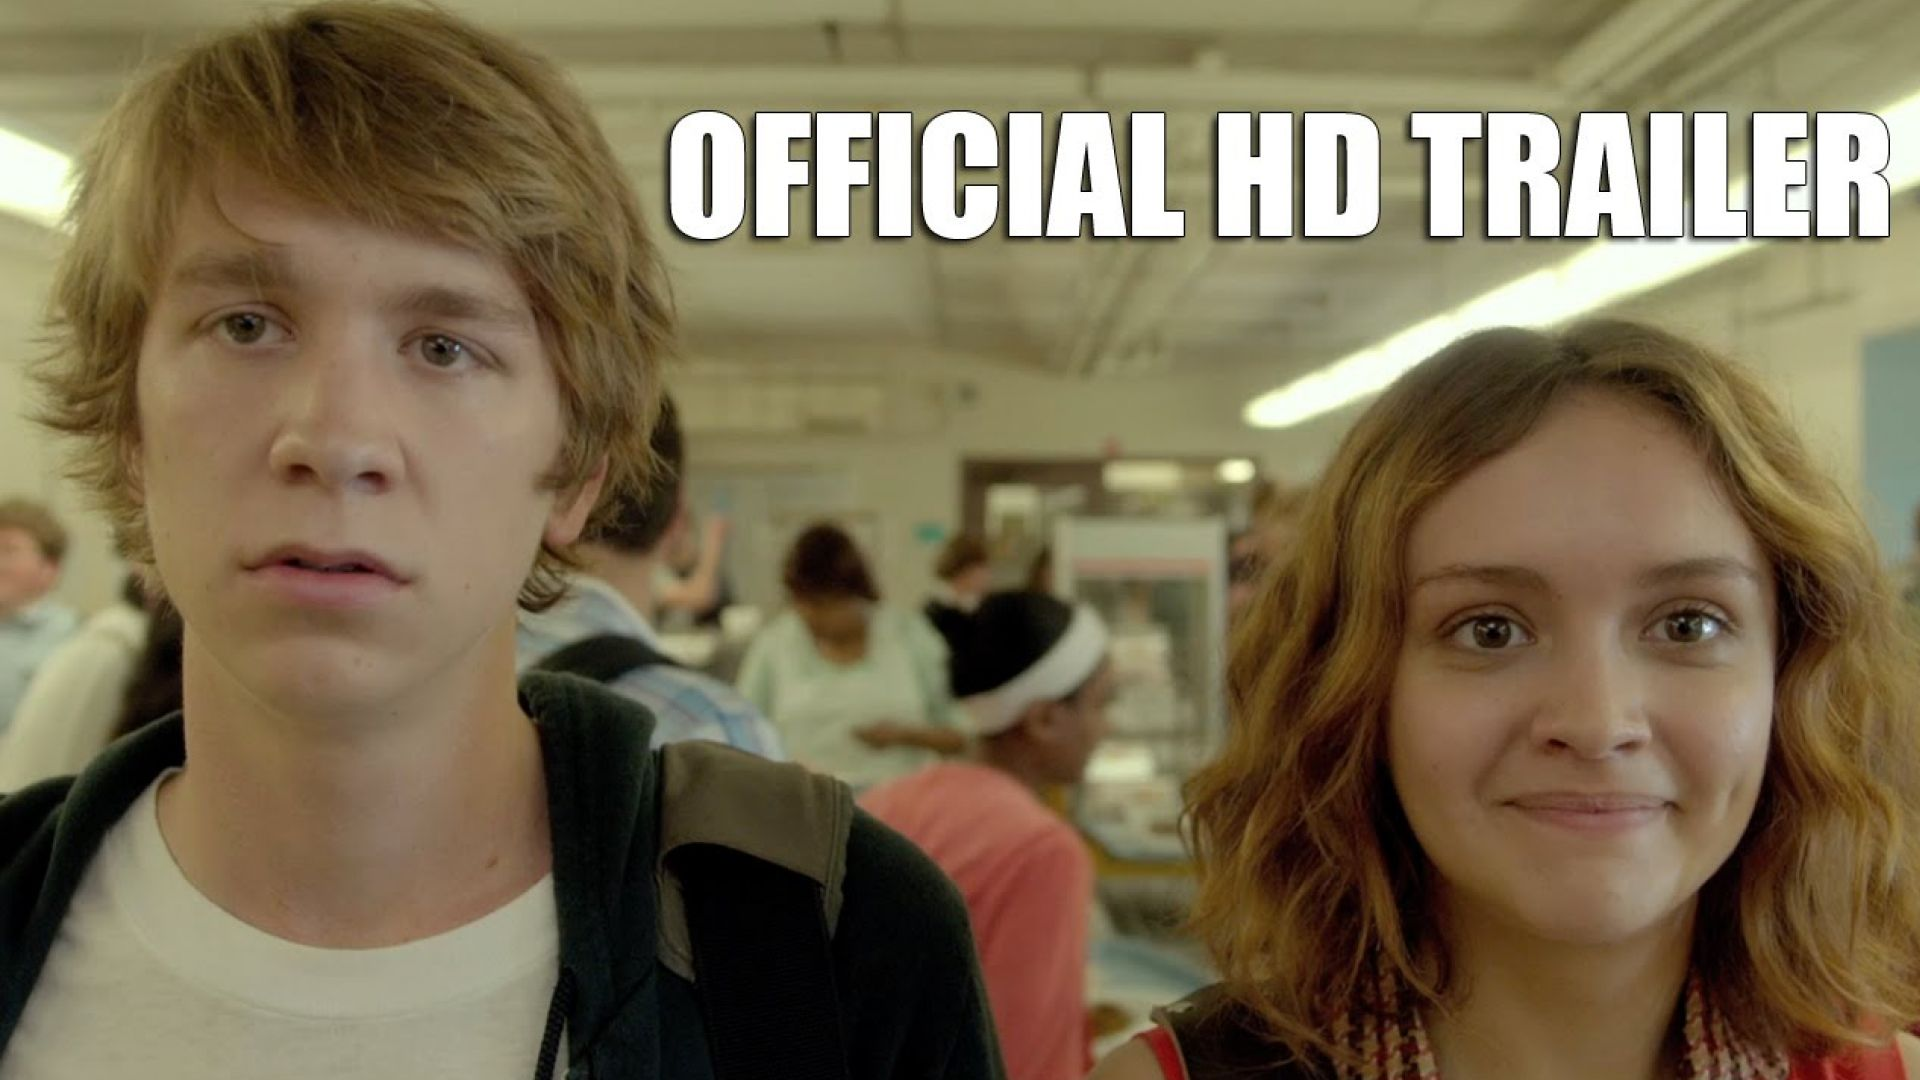 1. Me and Earl and the Dying Girl